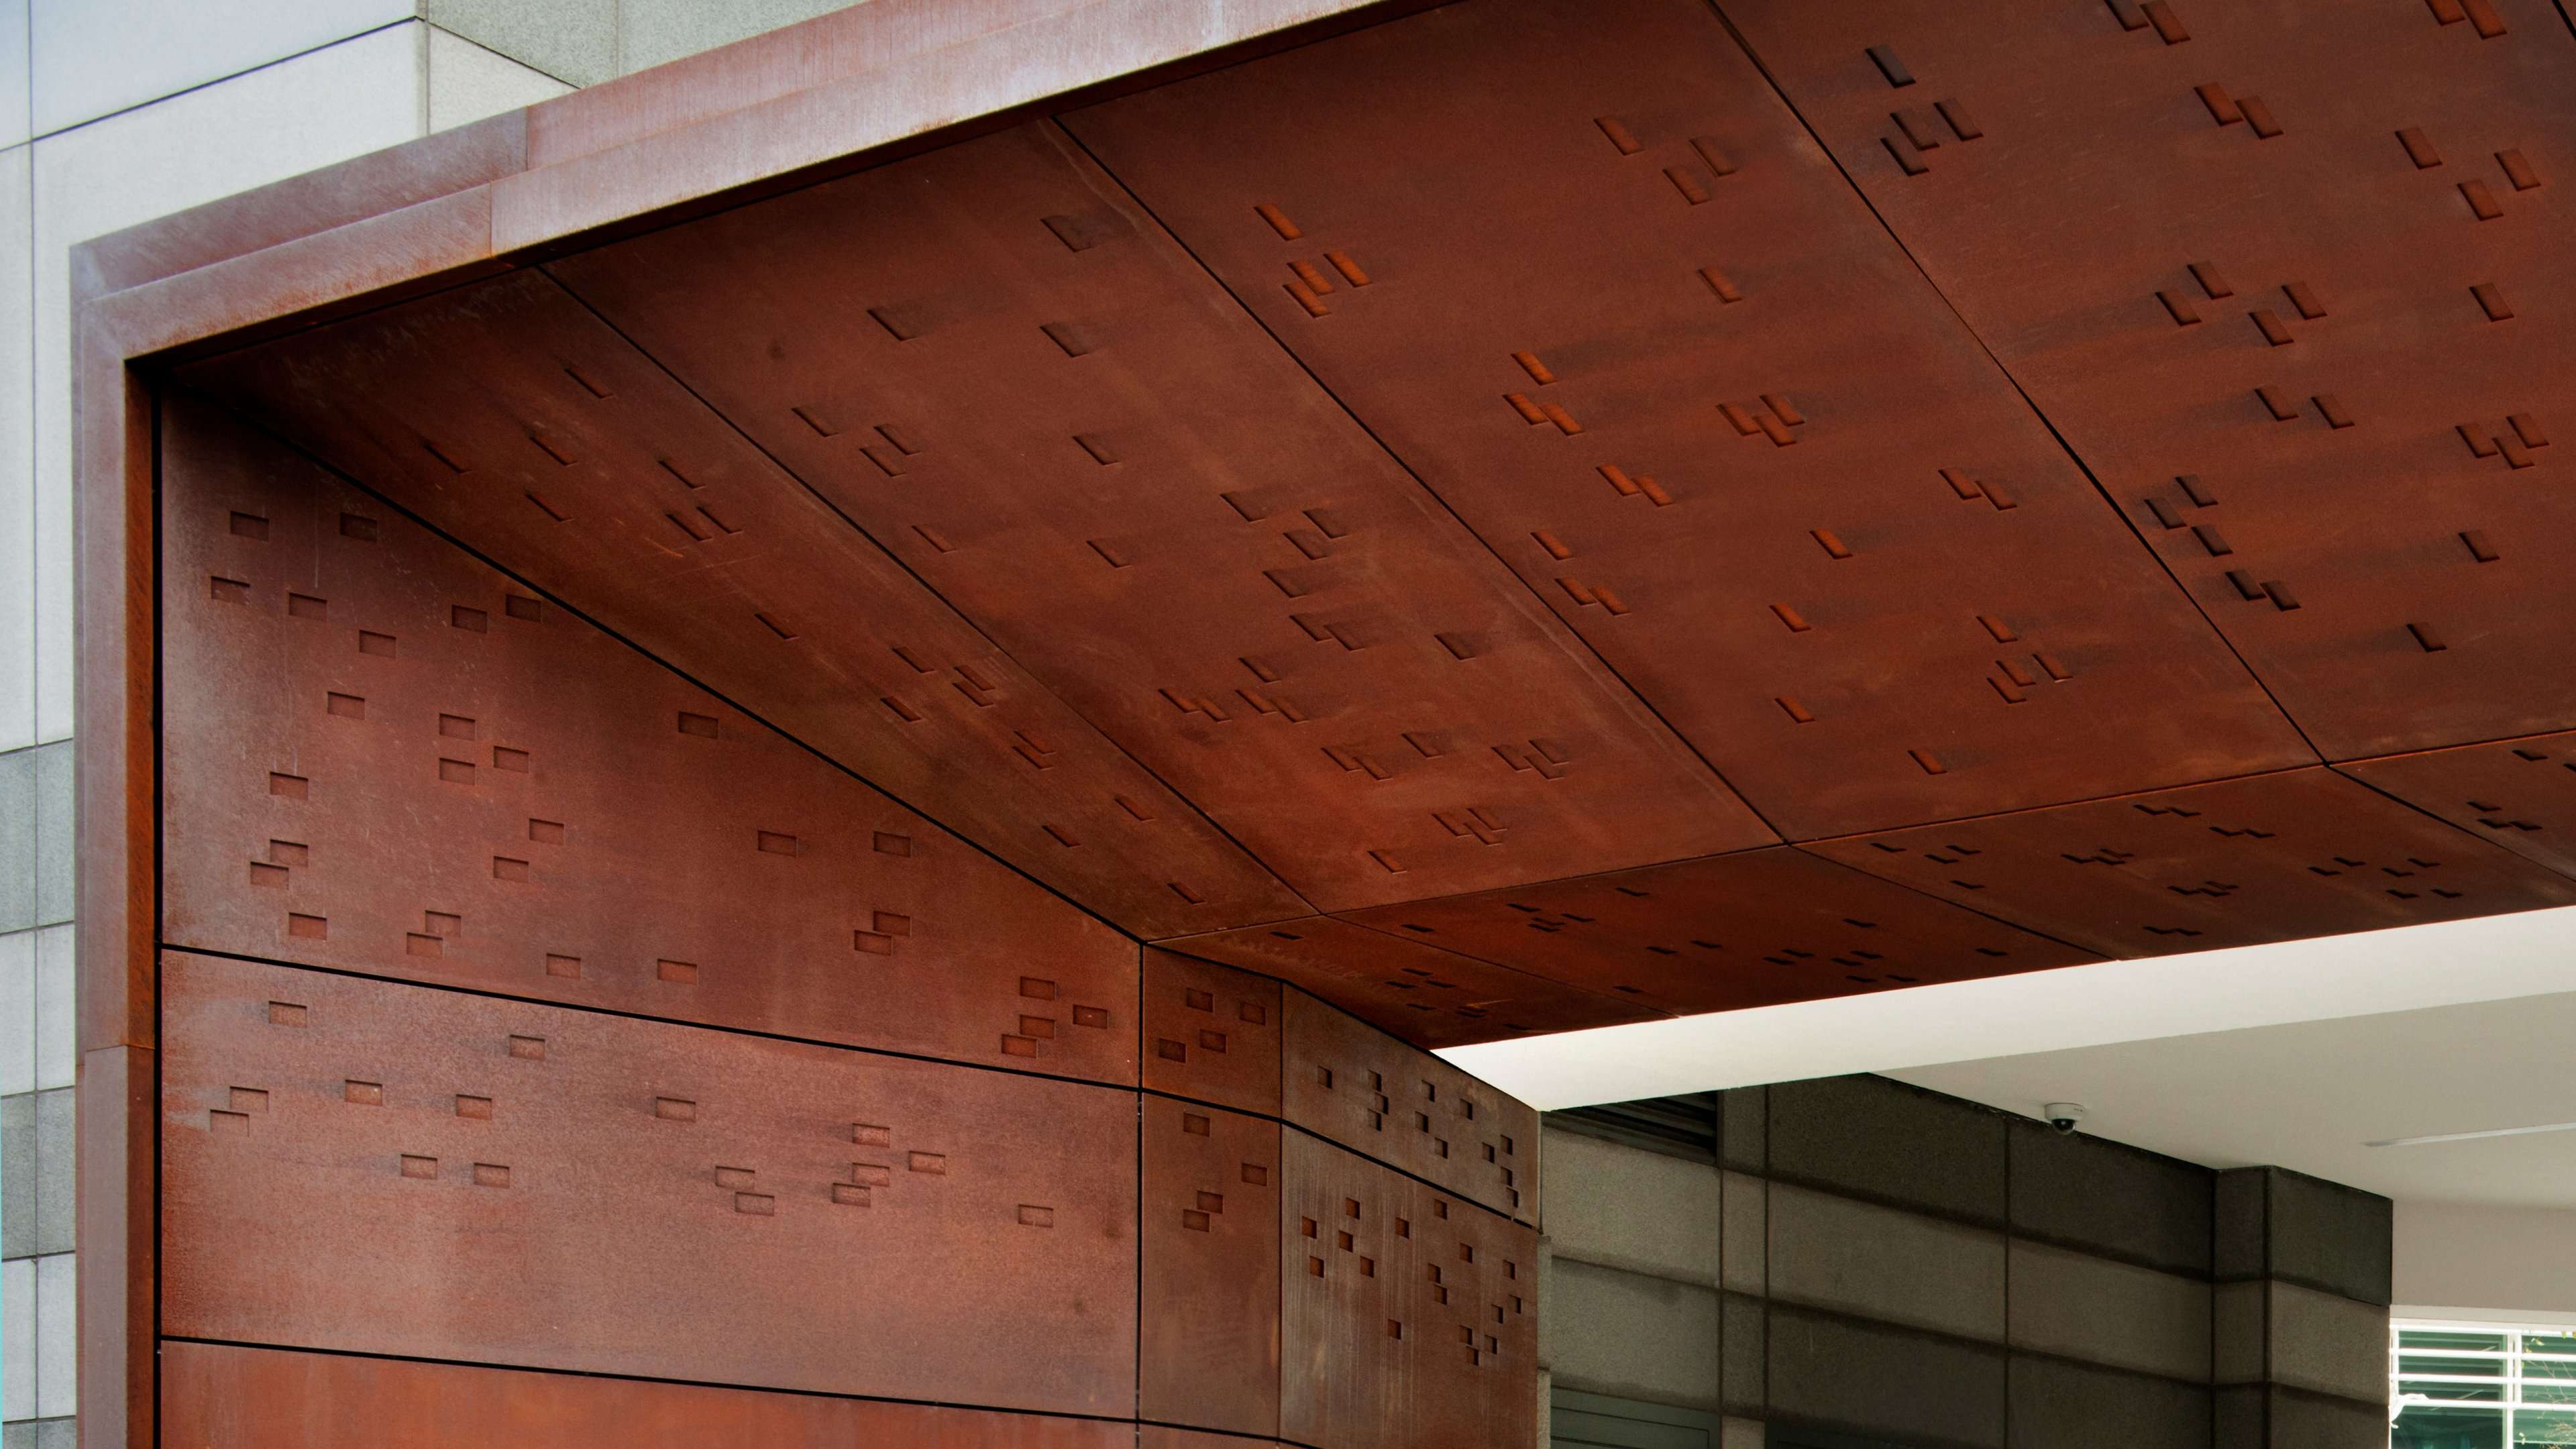 POHL weathering steel: Thomas More Square